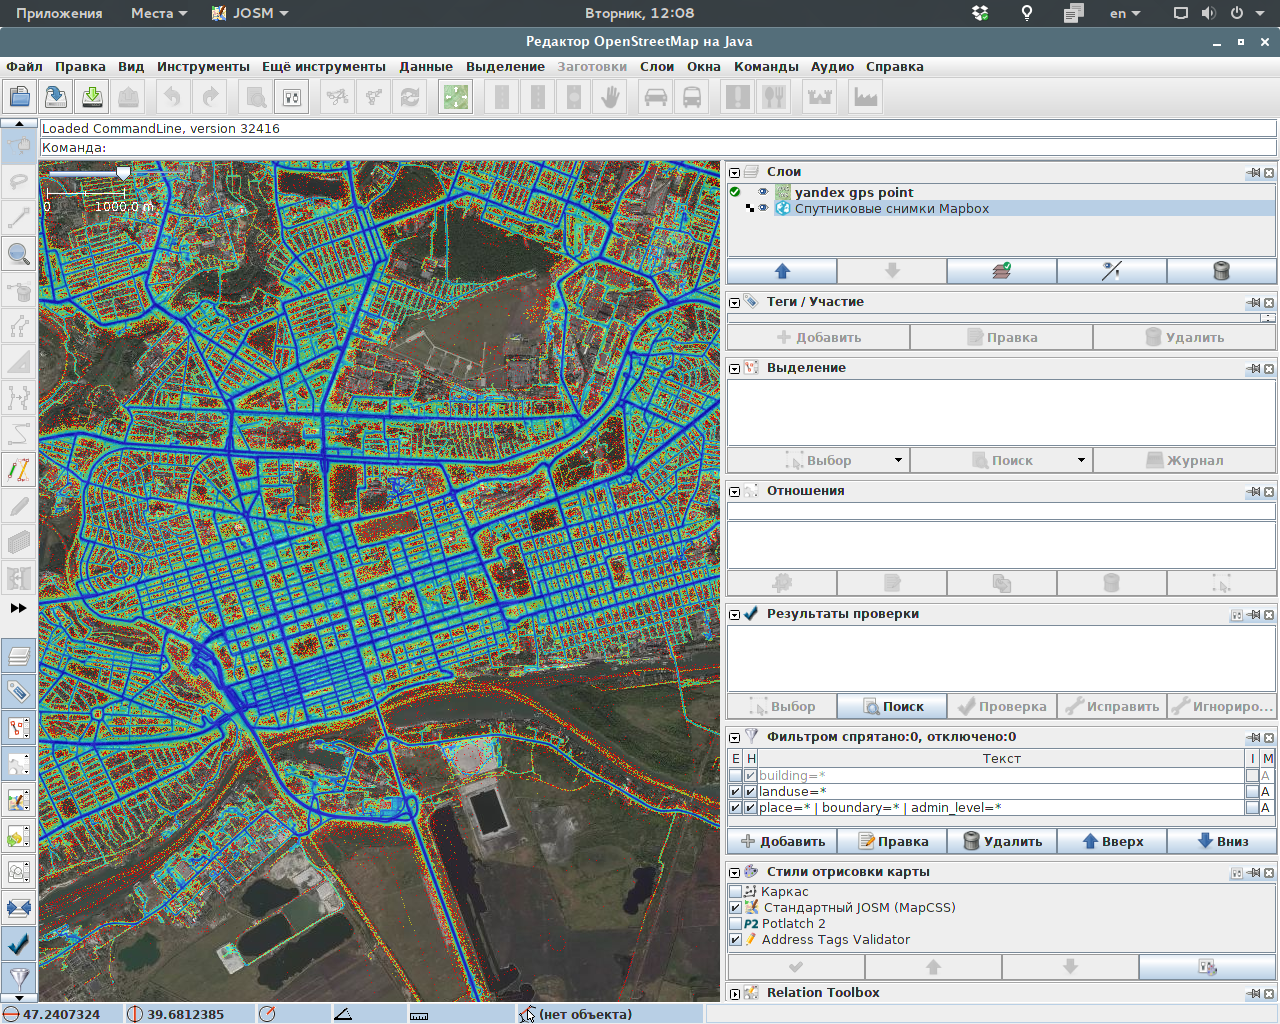 Yandex GPS point cloud